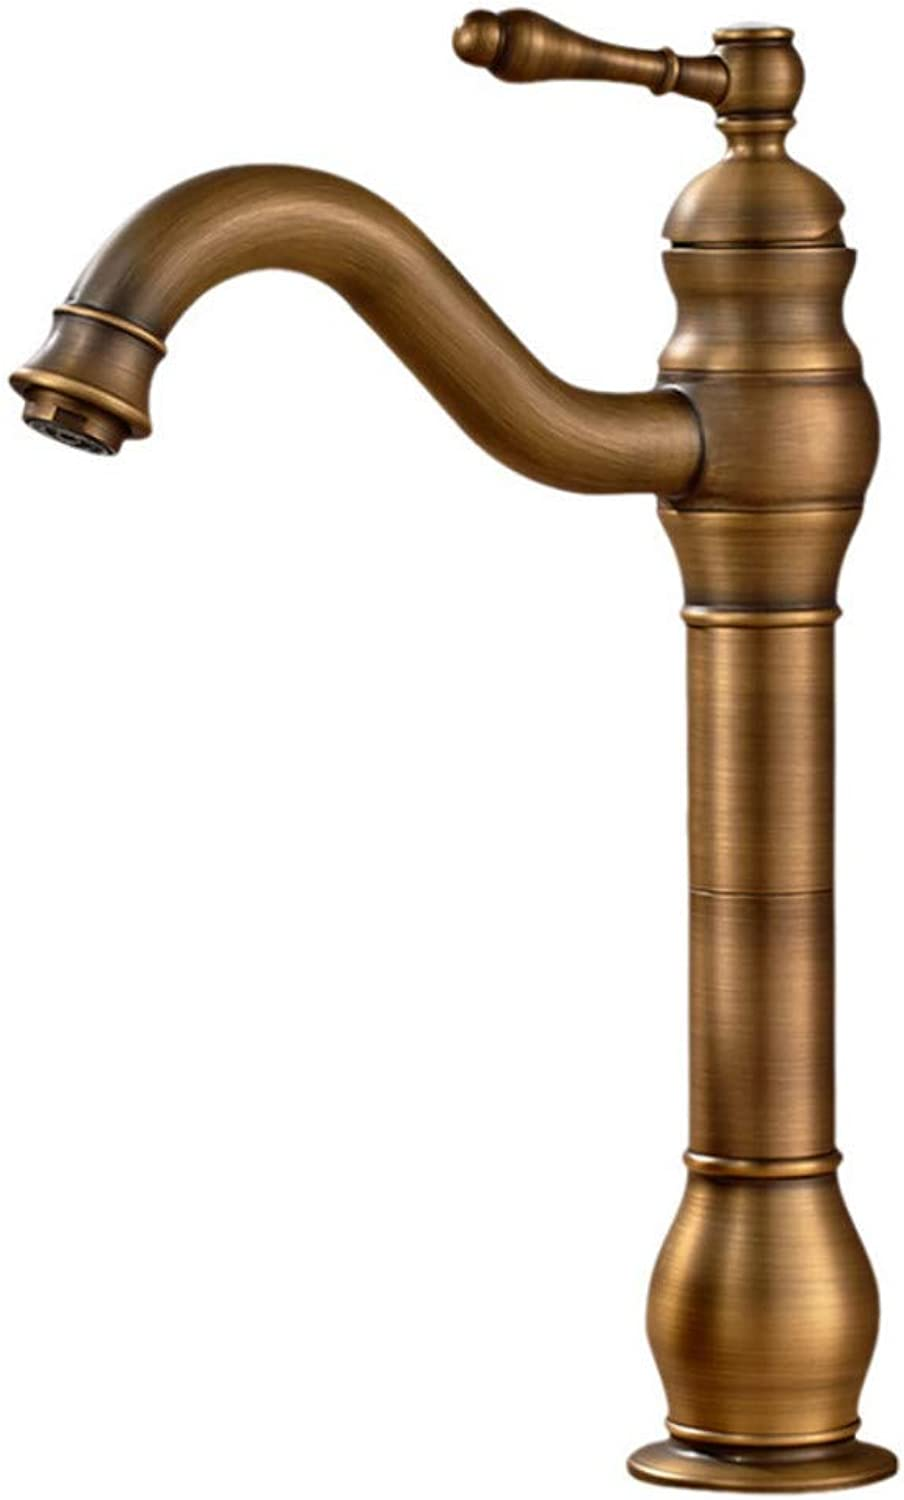 Faucet Antique Art Basin Above Counter Basin Faucet Heightening Basin Surface hot and Cold Copper Material European Retro Faucet